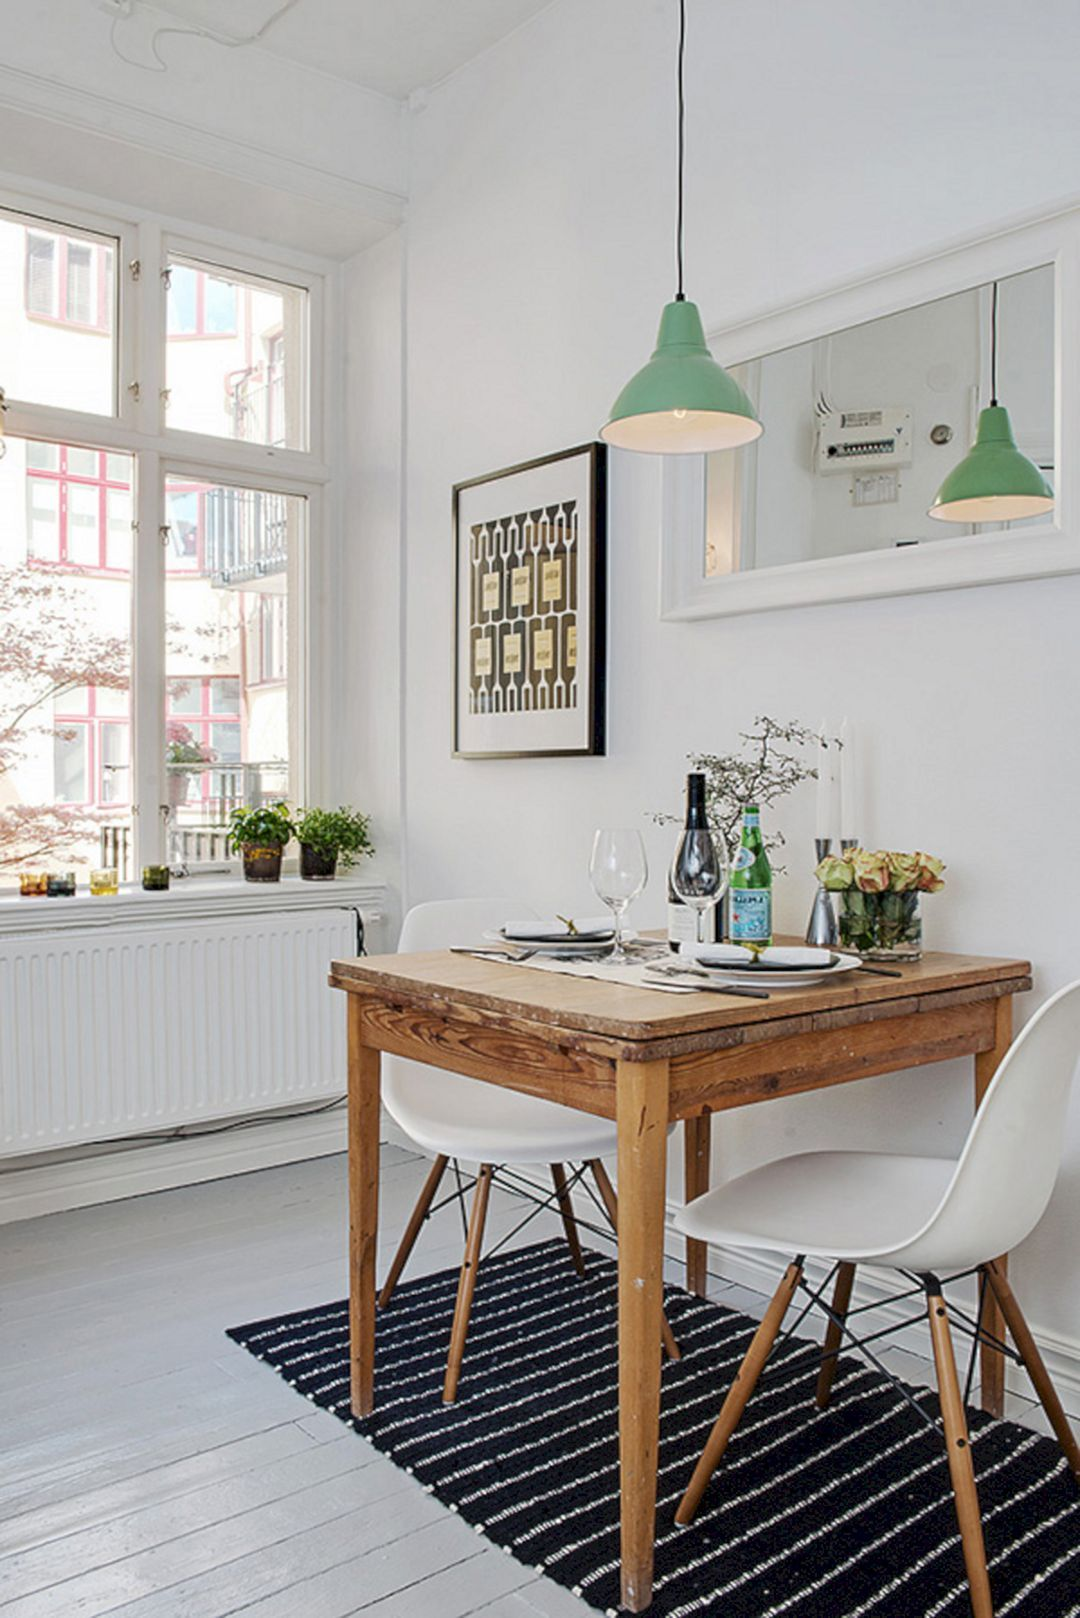 23 Small Dining Table Designs Decorating Ideas: 75 Simple And Minimalist Dining Table Decor Ideas